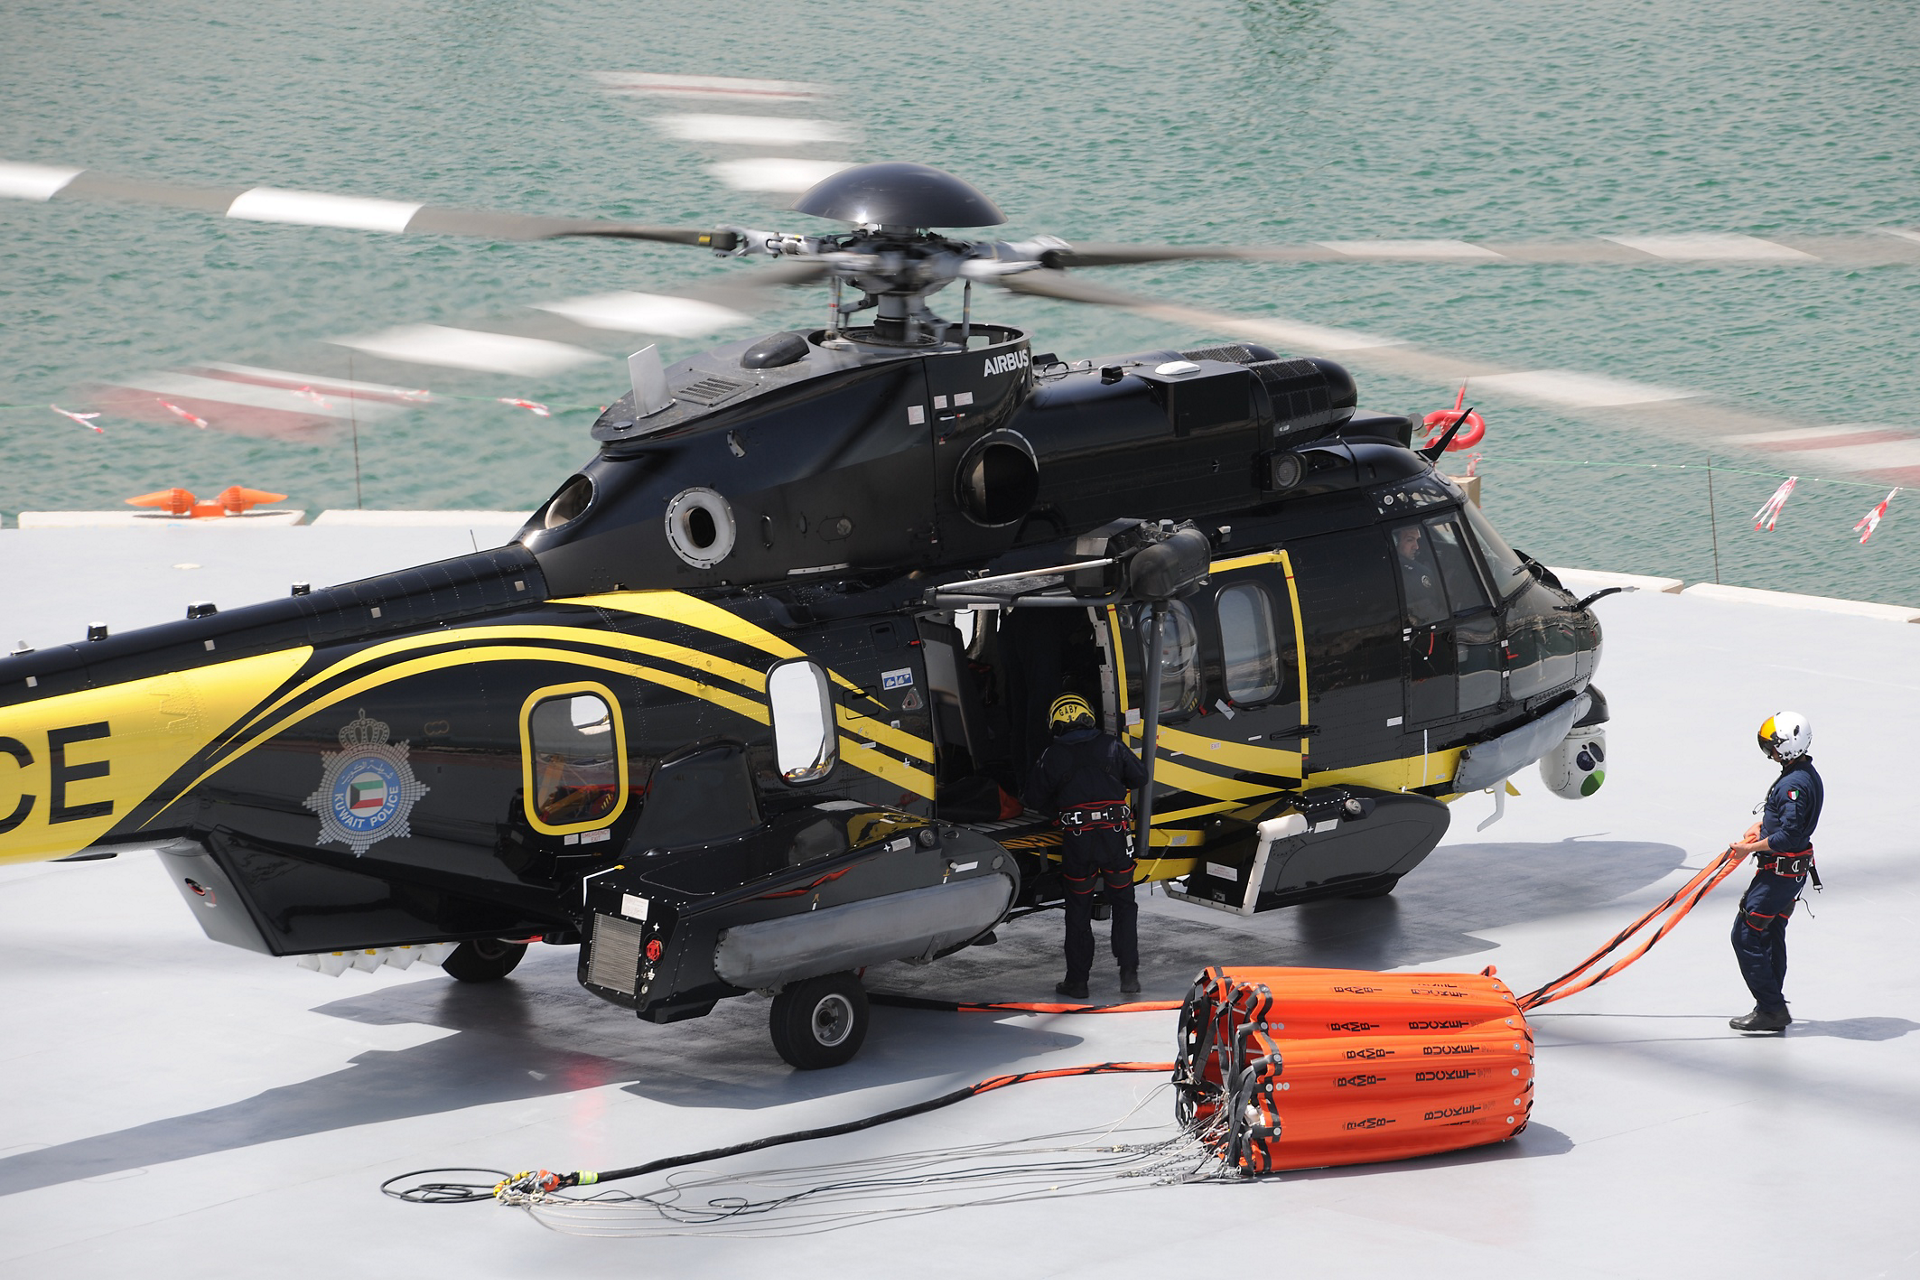 A bucket-type water dispersal system is readied for use on one of the Kuwait Ministry of Interior's H225 helicopters.